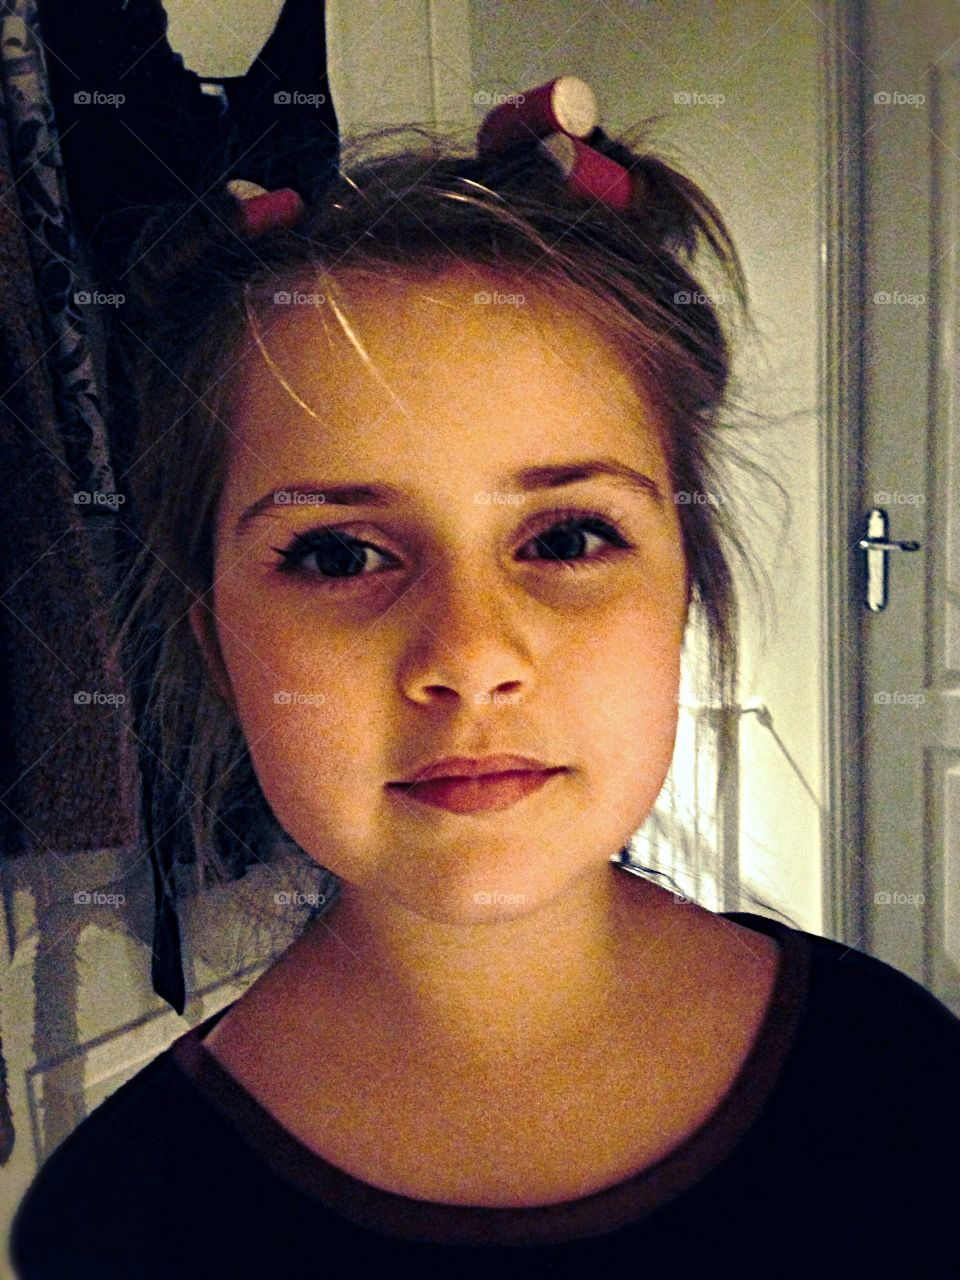 My muse a few years ago- beautiful, young, innocent